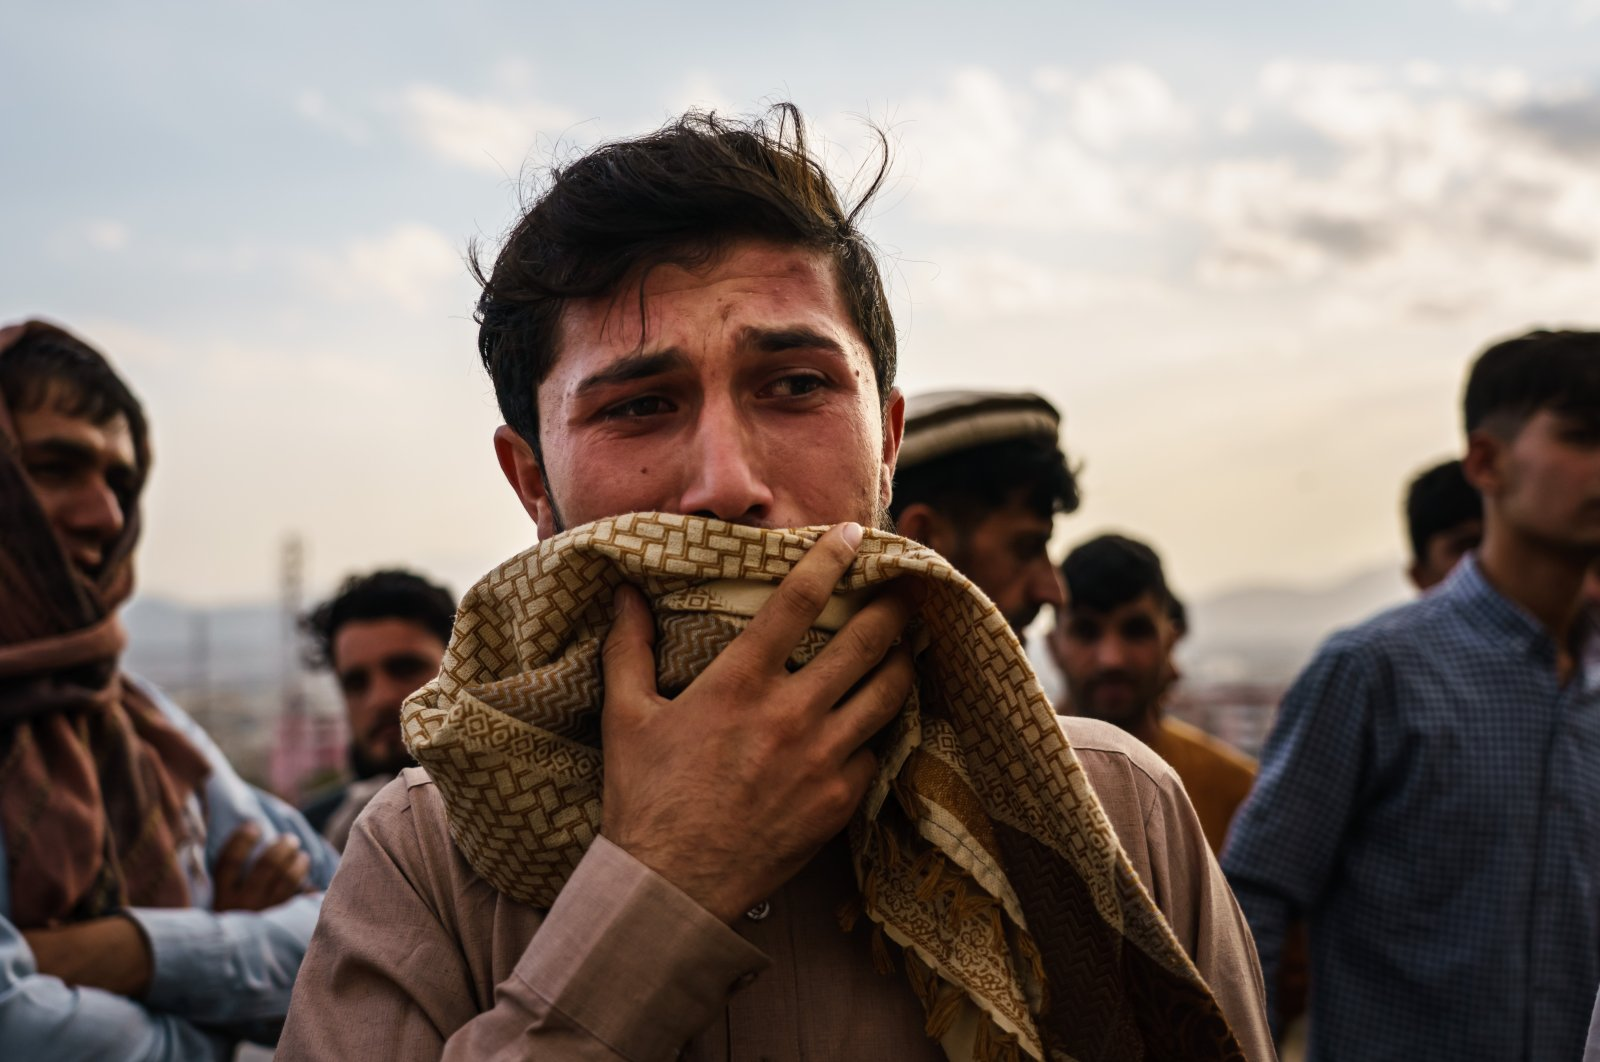 A man weeps during a mass funeral for a members of a family was killed in a U.S. drone airstrike, in Kabul, Afghanistan, Aug. 30, 2021. (Getty Images)